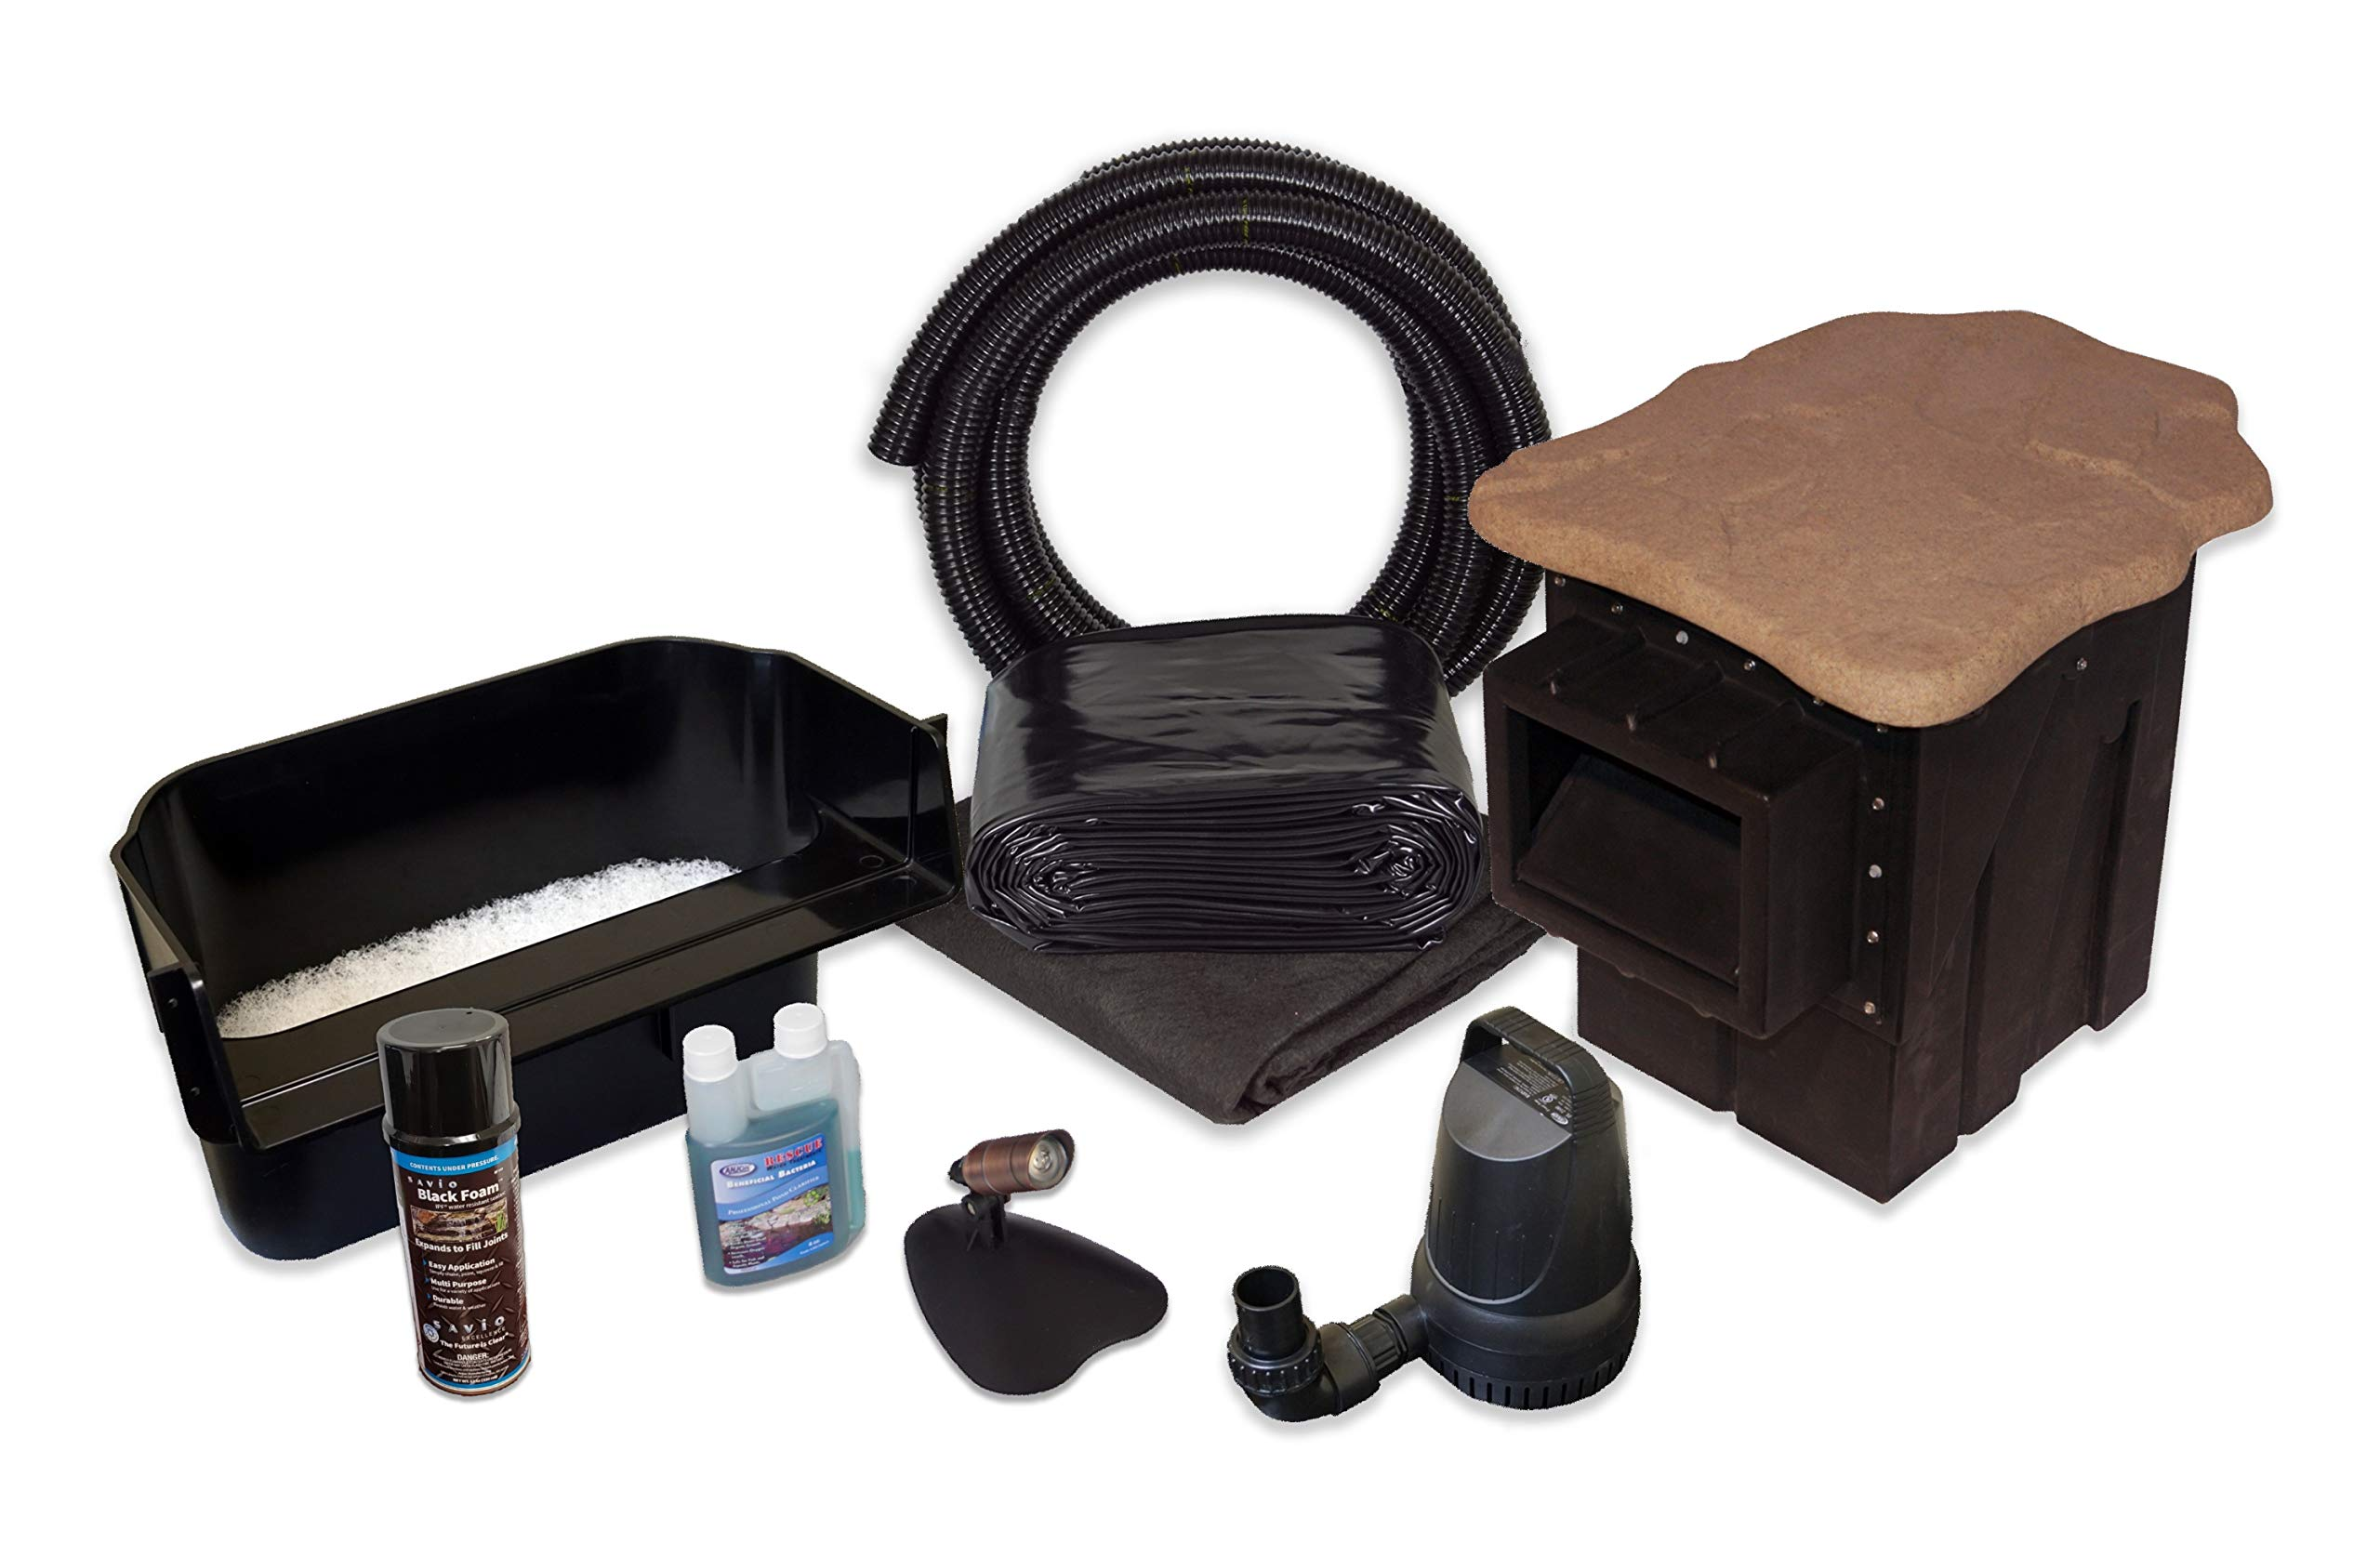 Simply Ponds 2100 Water Garden and Pond Kit with 15 Foot x 15 Foot PVC Liner by HALF OFF PONDS